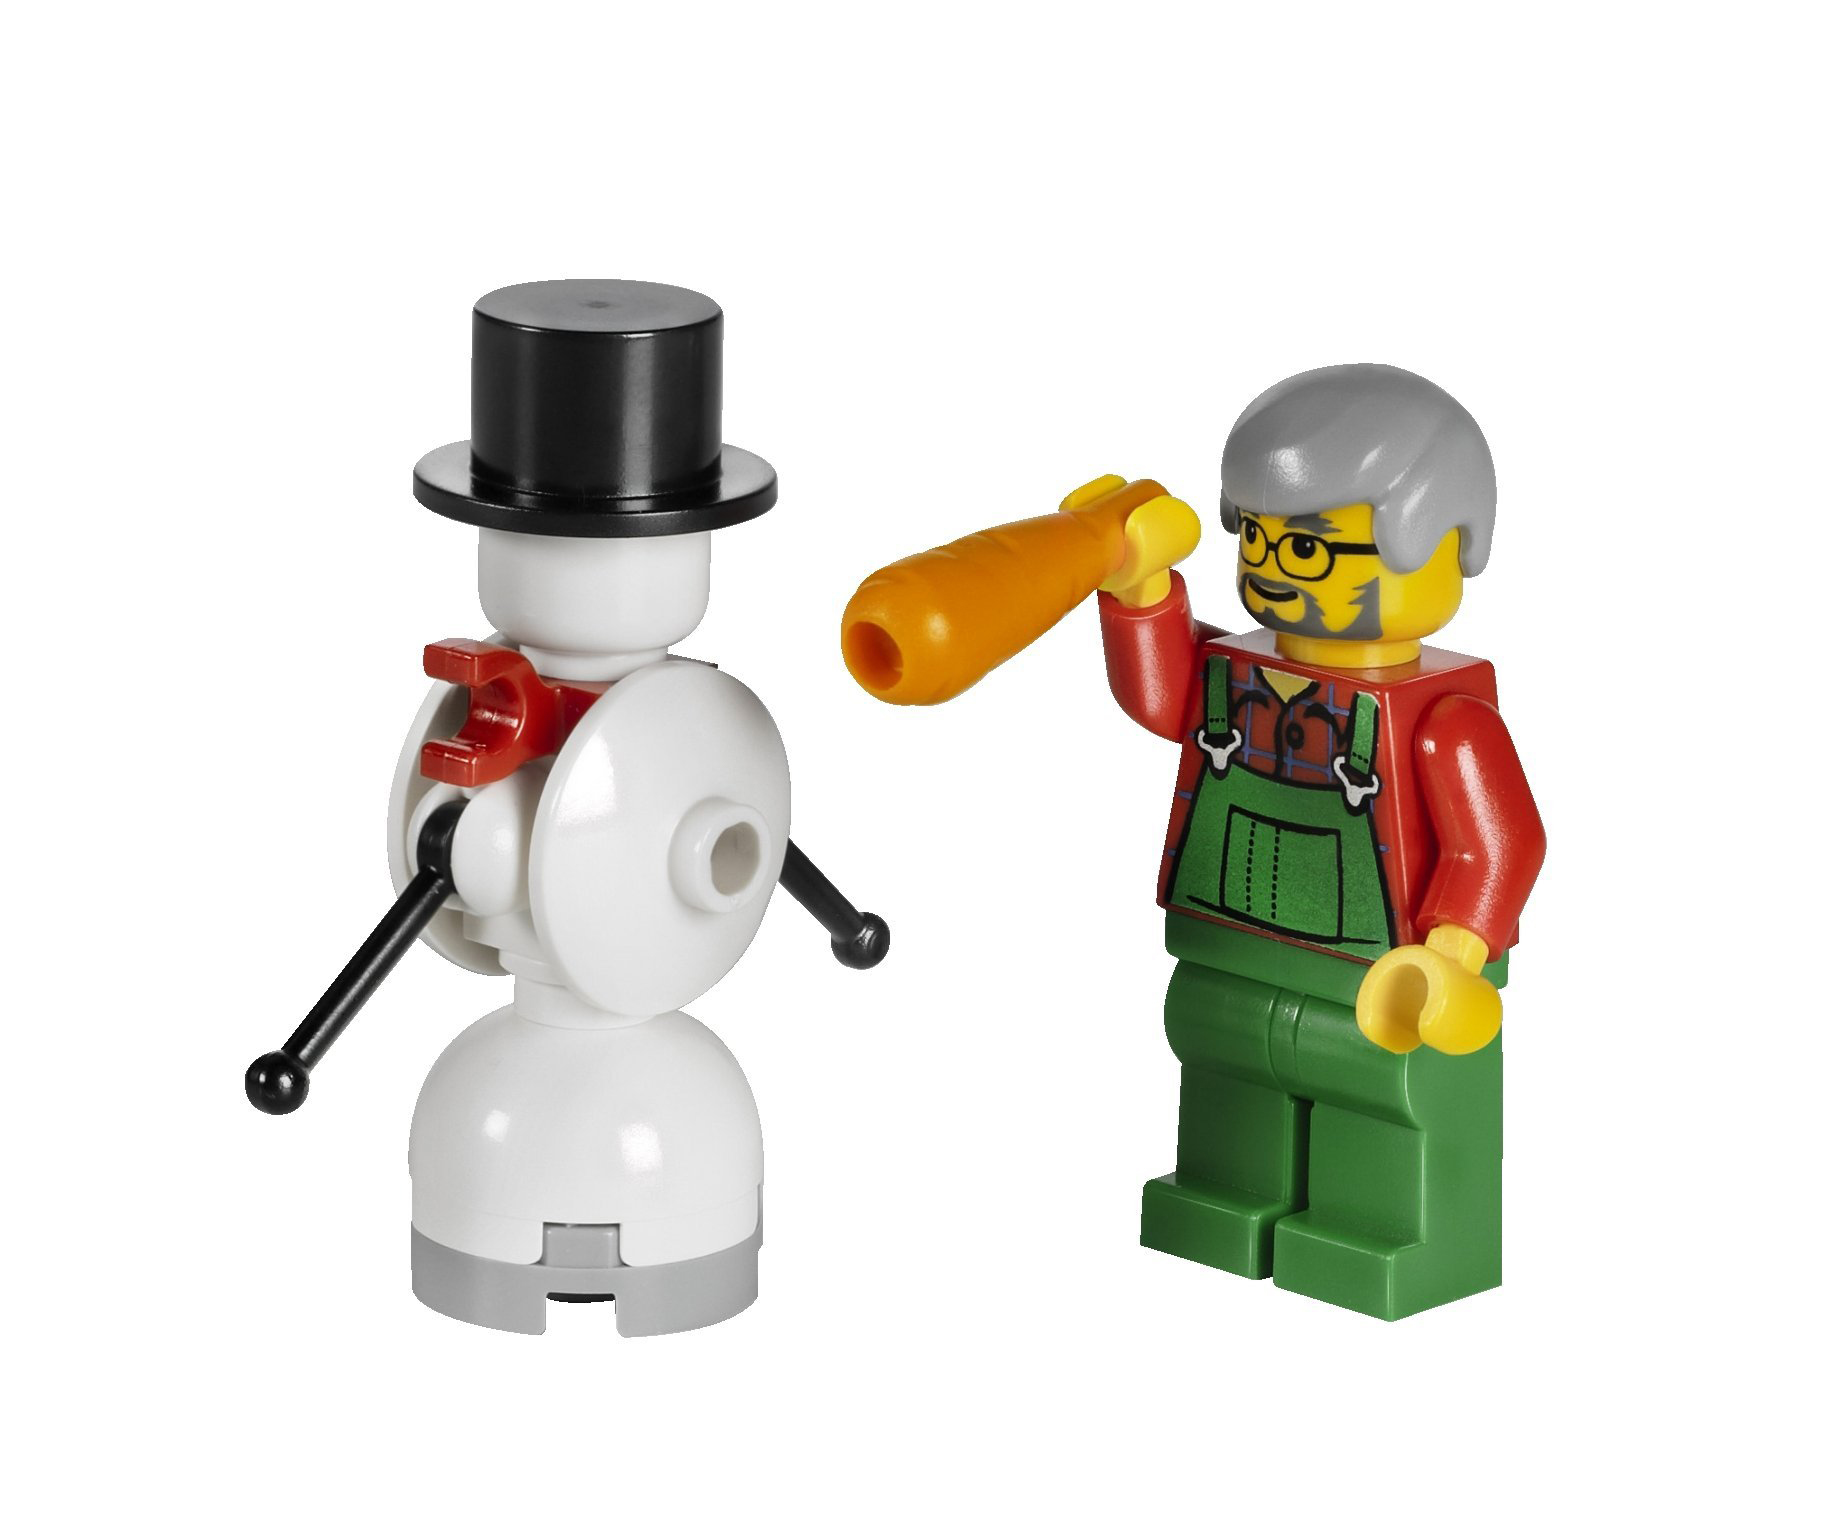 h_10199_minifigure_2_hr.jpg